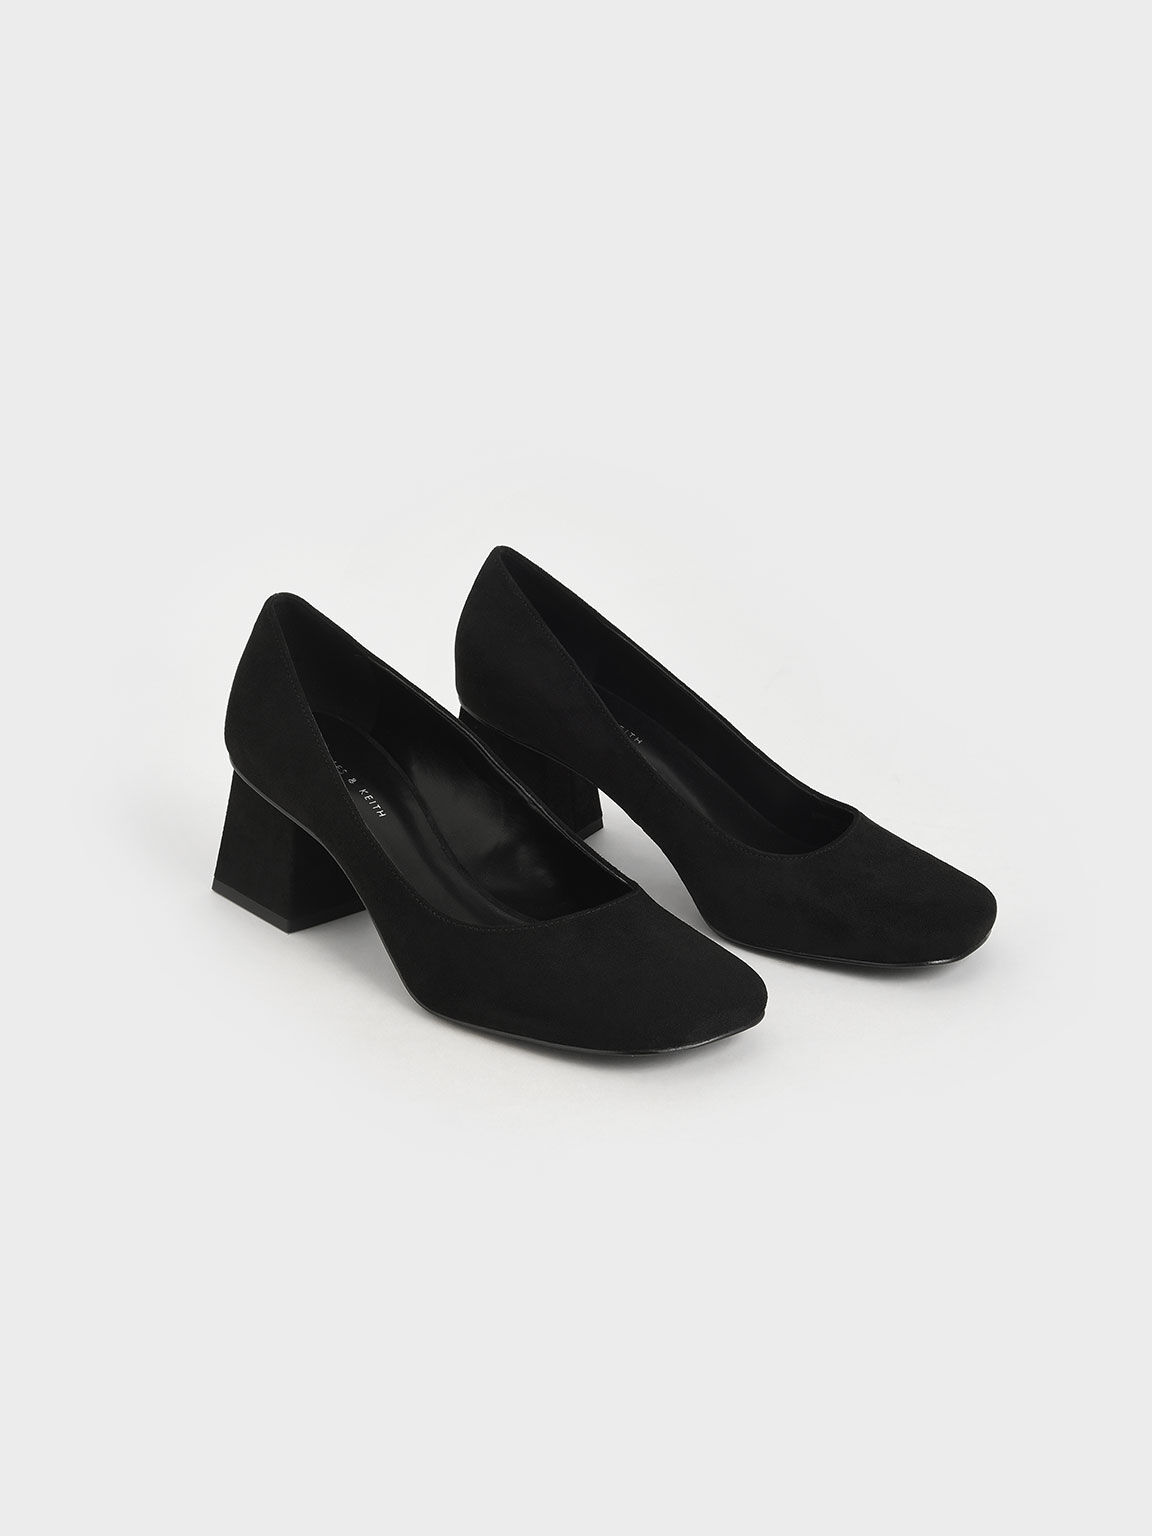 Textured Trapeze Heel Pumps, Black, hi-res